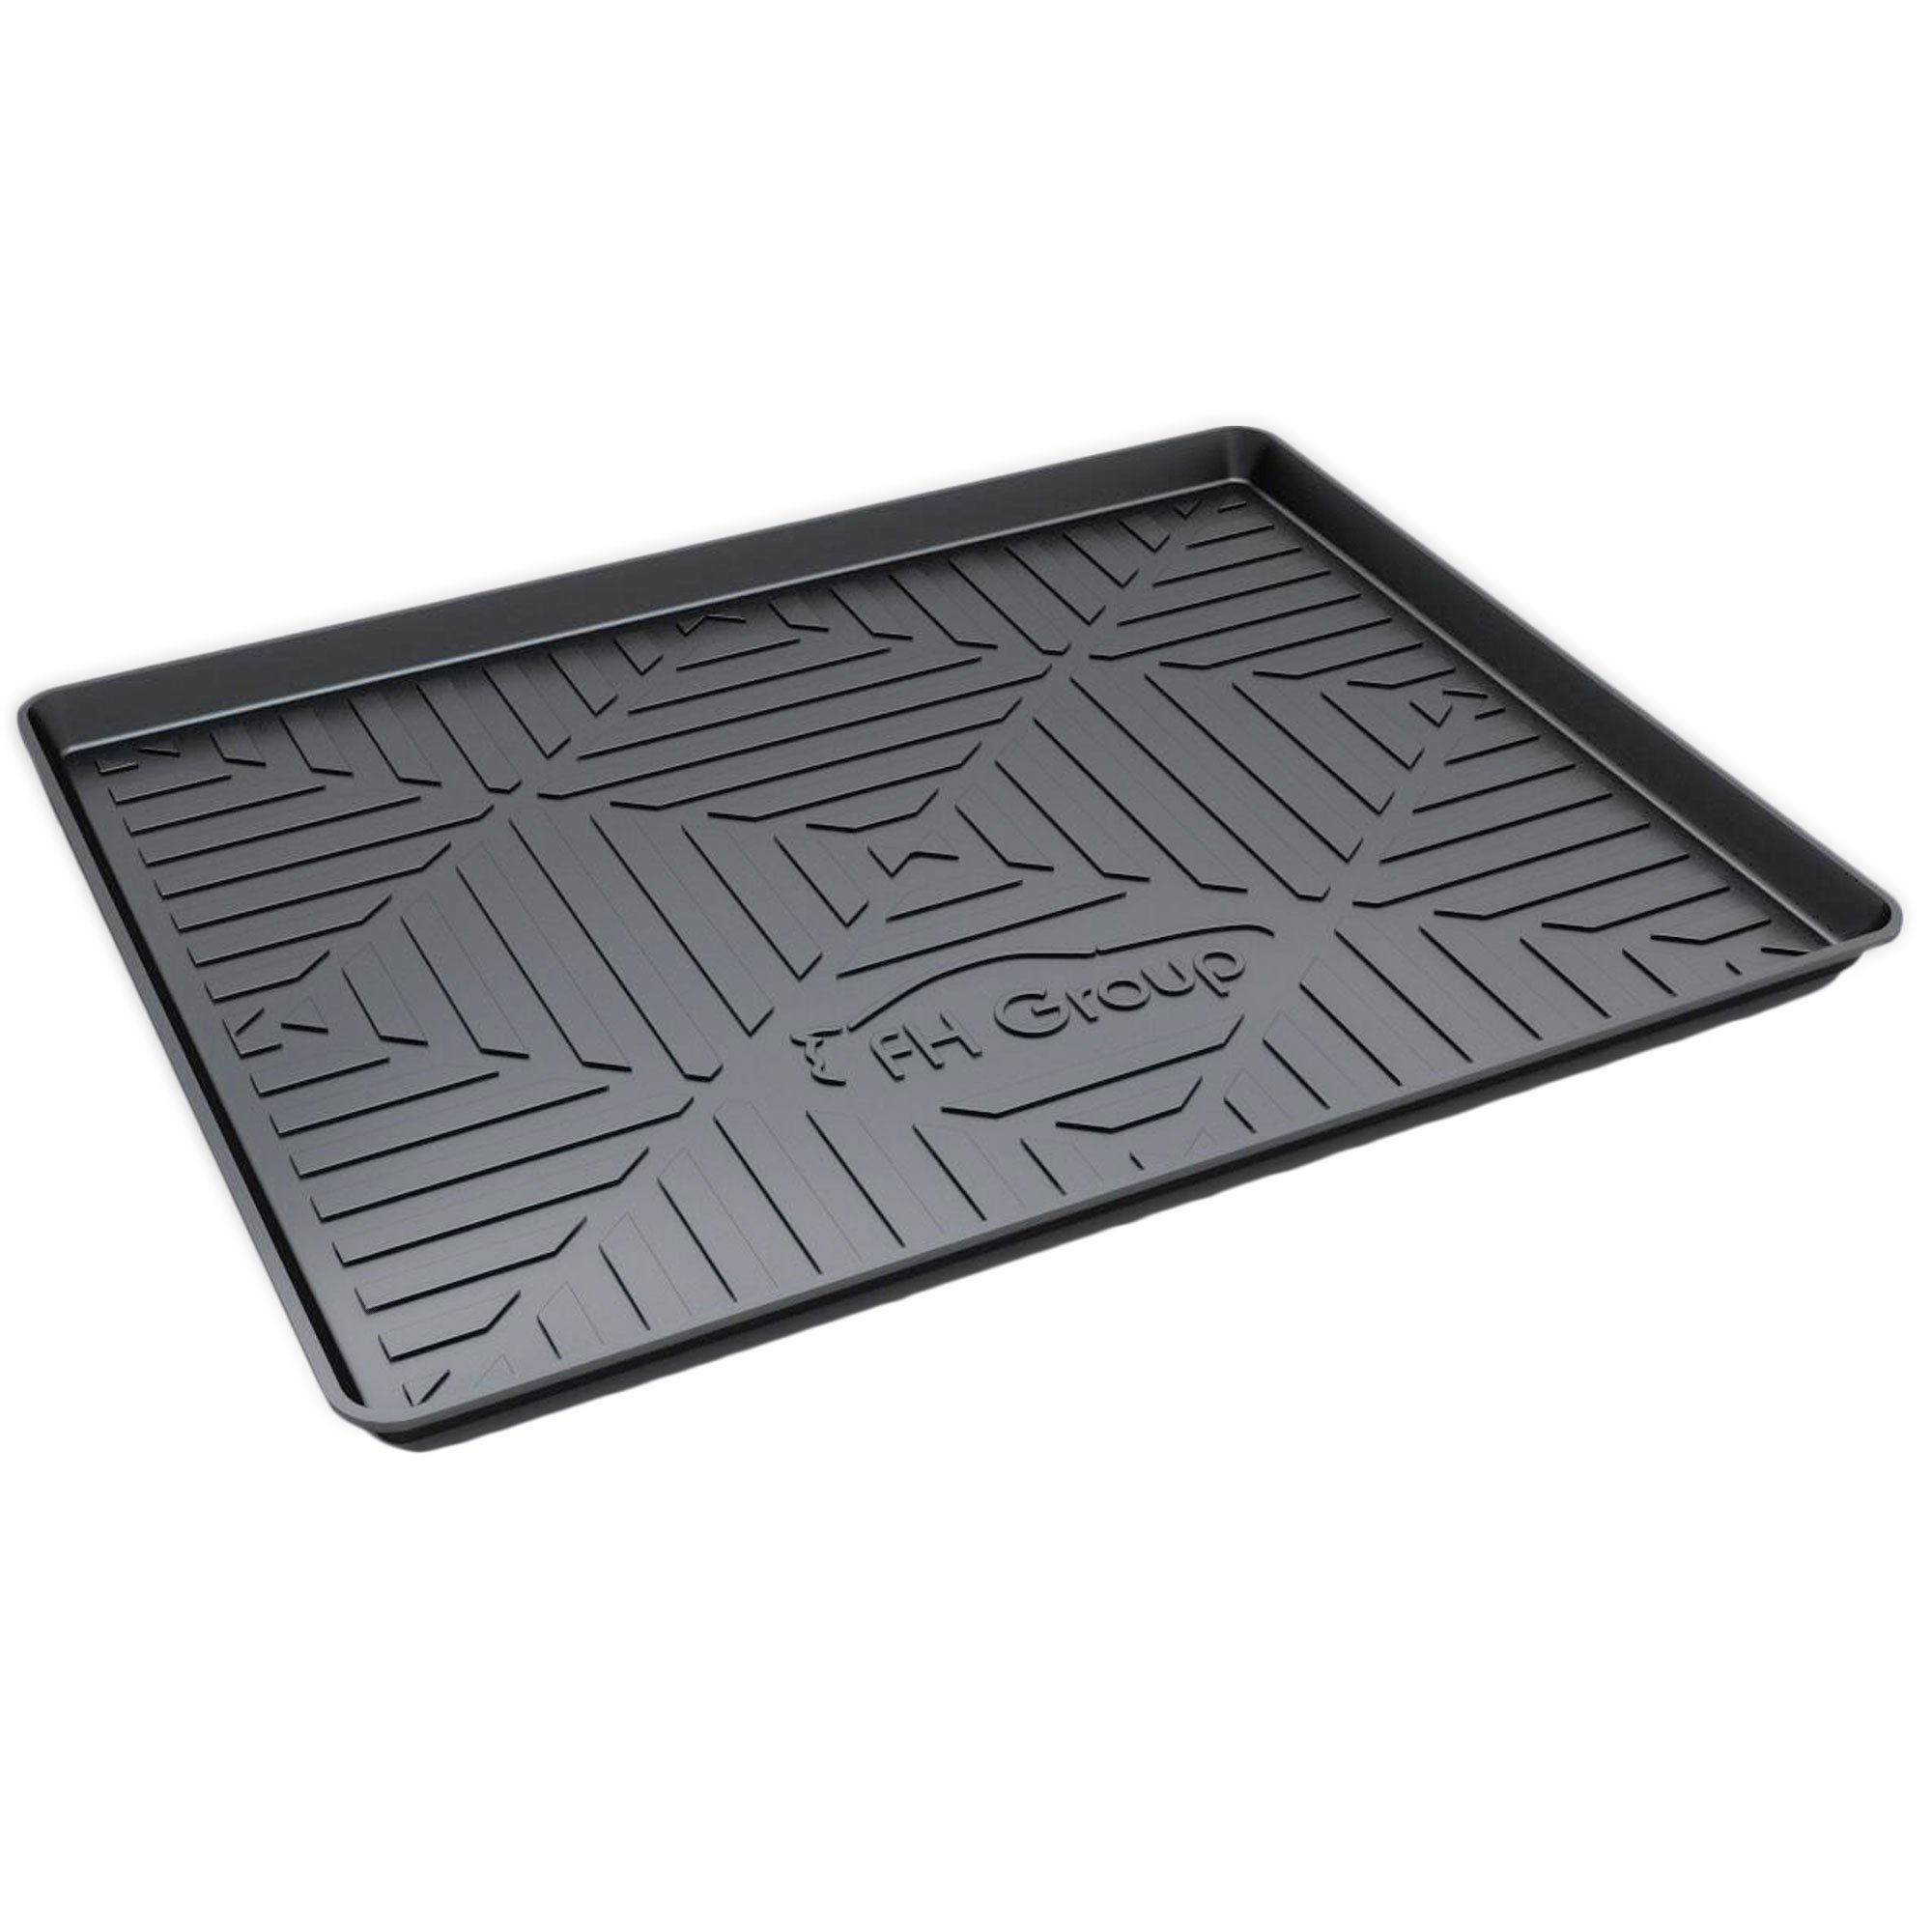 FH Group F16407-40 Premium Multi-Use Car SUV and Garage Trunk Mat Cargo Tray, 40'' x 32'', Black by FH Group